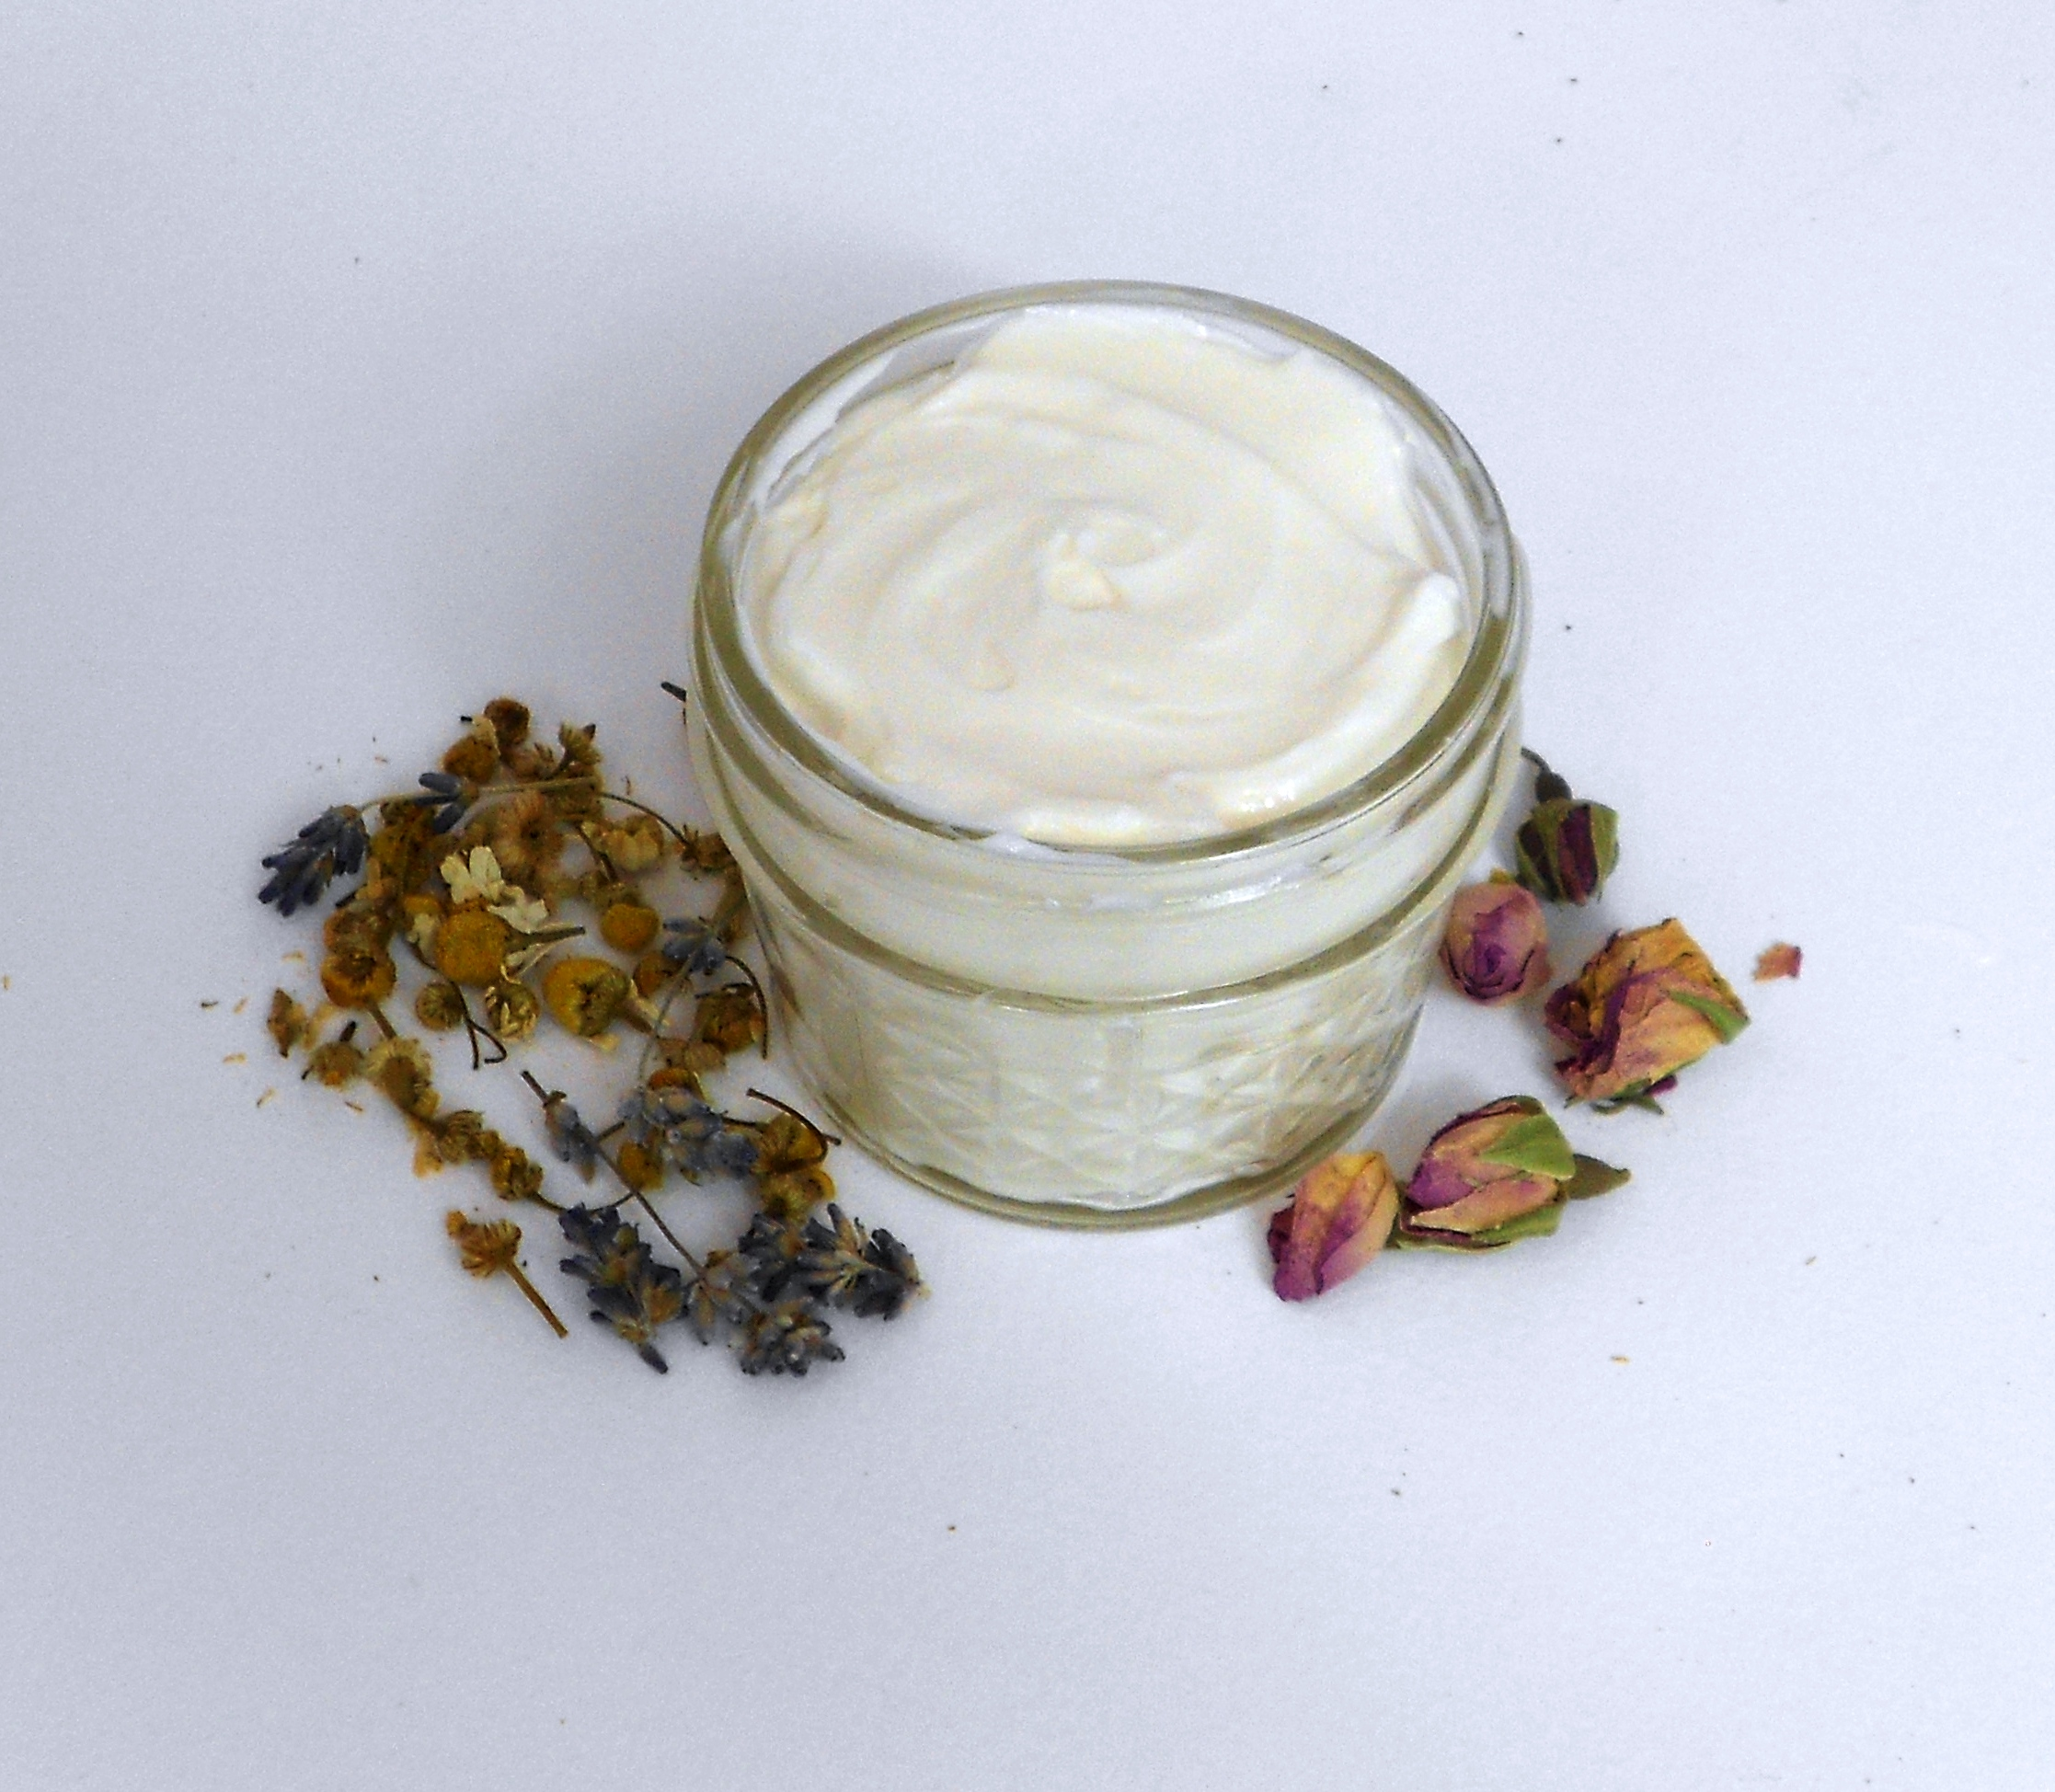 HOW TO MAKE LAVENDER LOTION - Lavender lotion recipe by Sarah Ingram eScentialsAroma. Homemade Lavender Lotion. #LavenderLotion #HowToMakeLavenderLotion #GardensAll #LavenderLotionRecipe